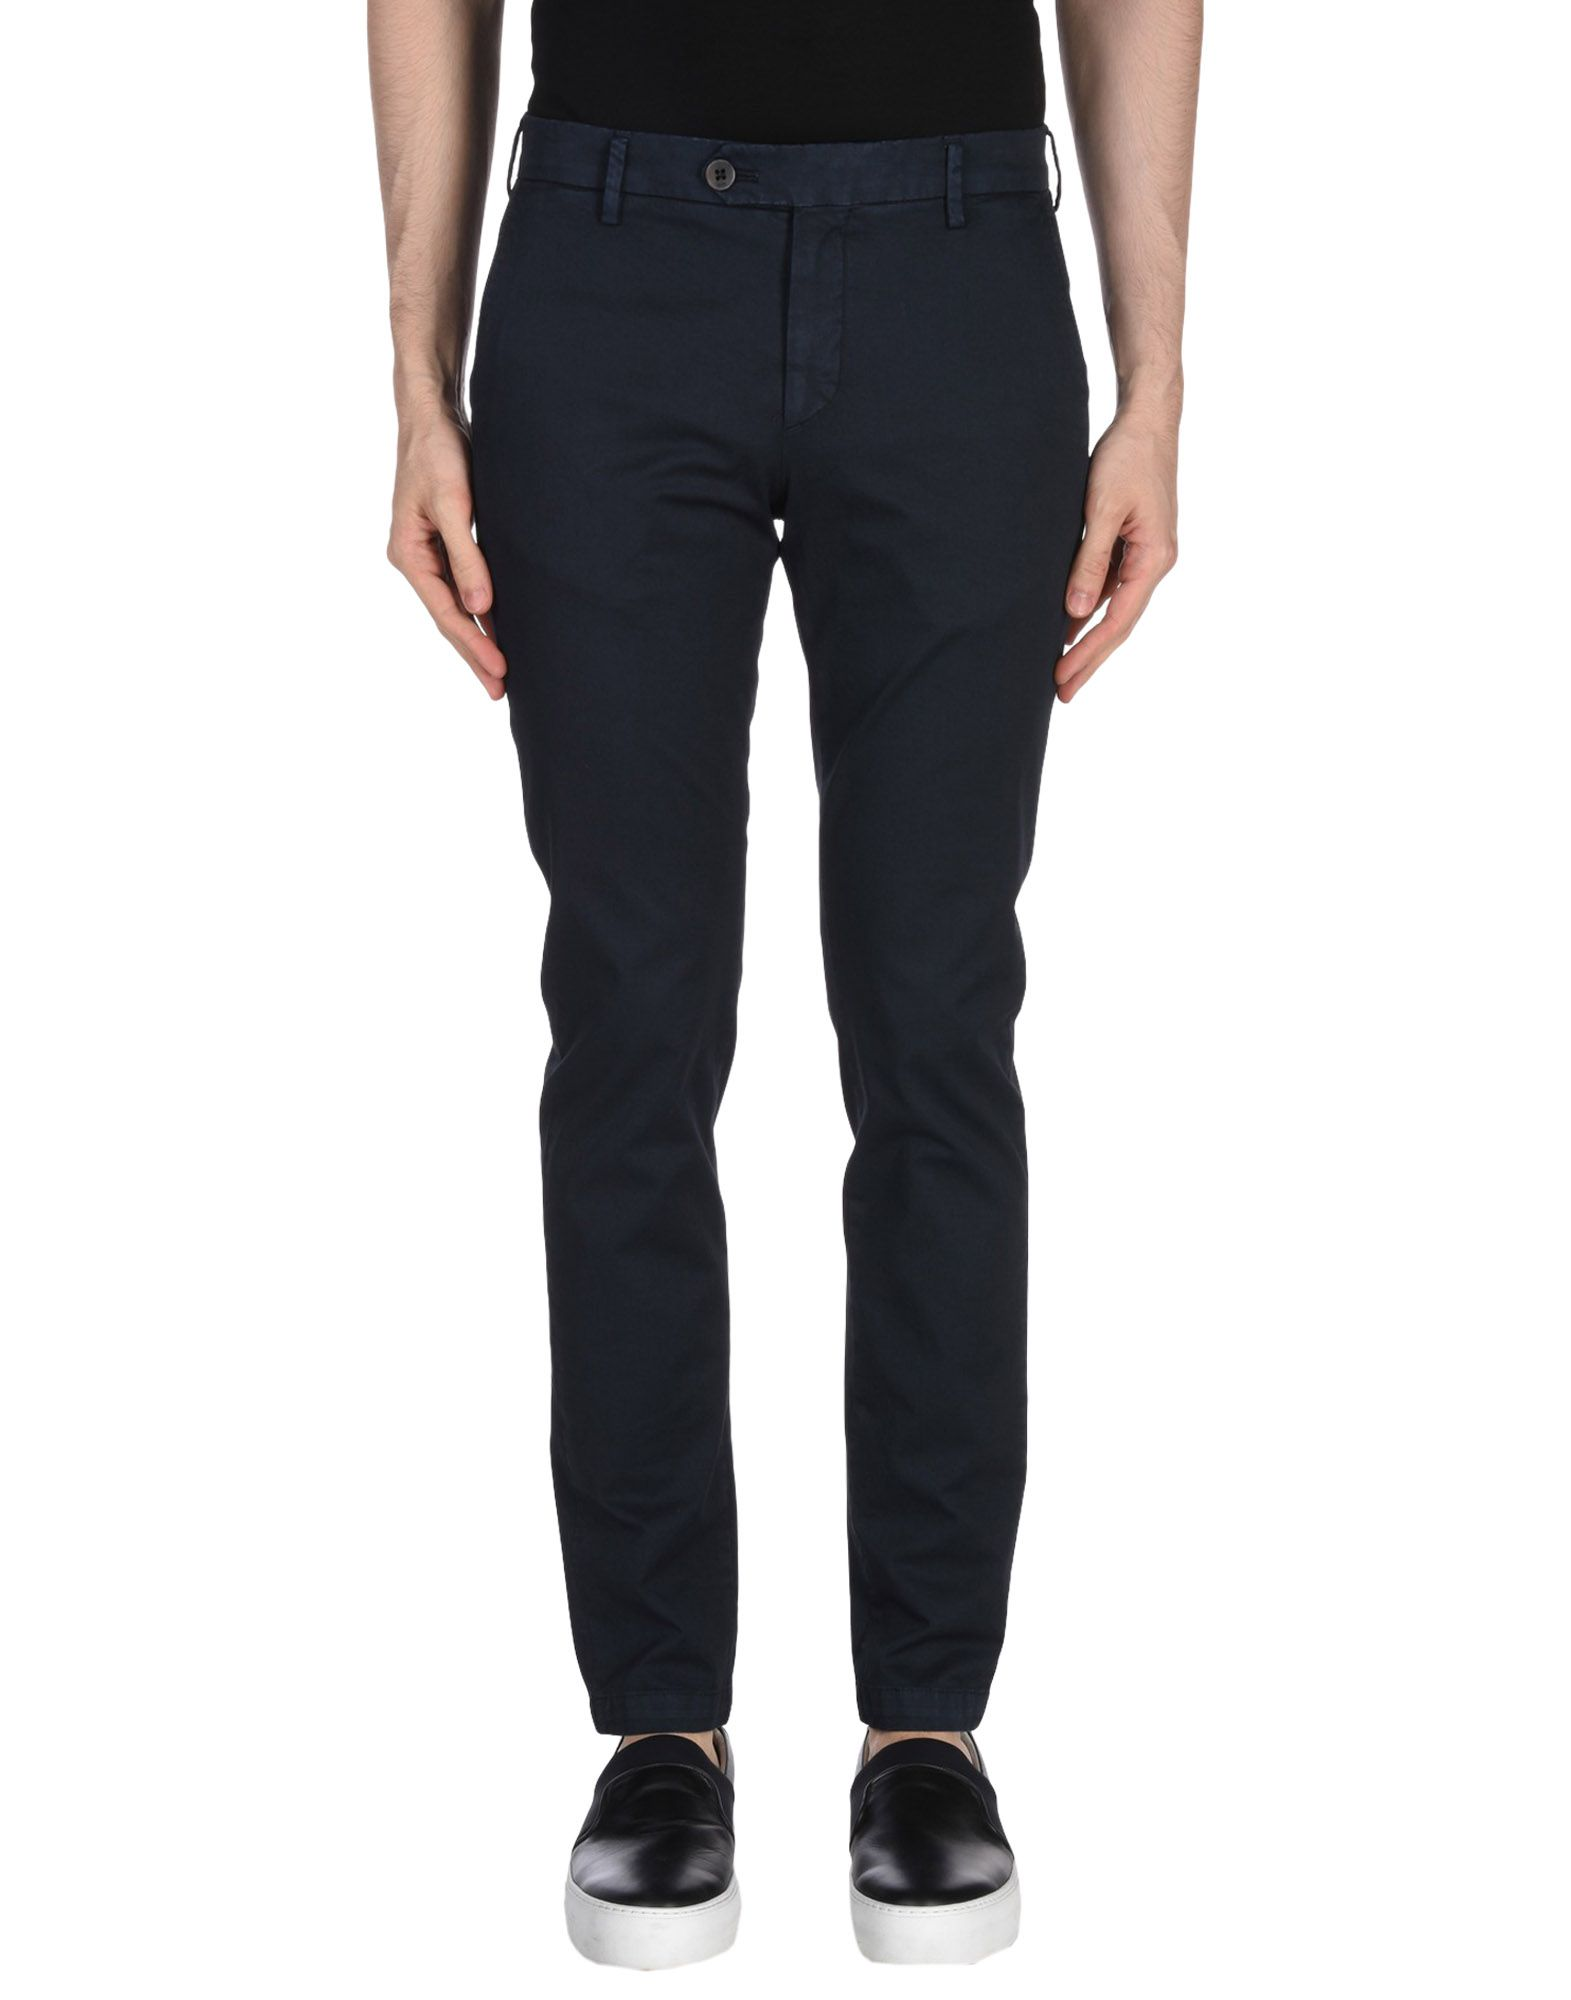 BE ABLE Casual Pants in Dark Blue